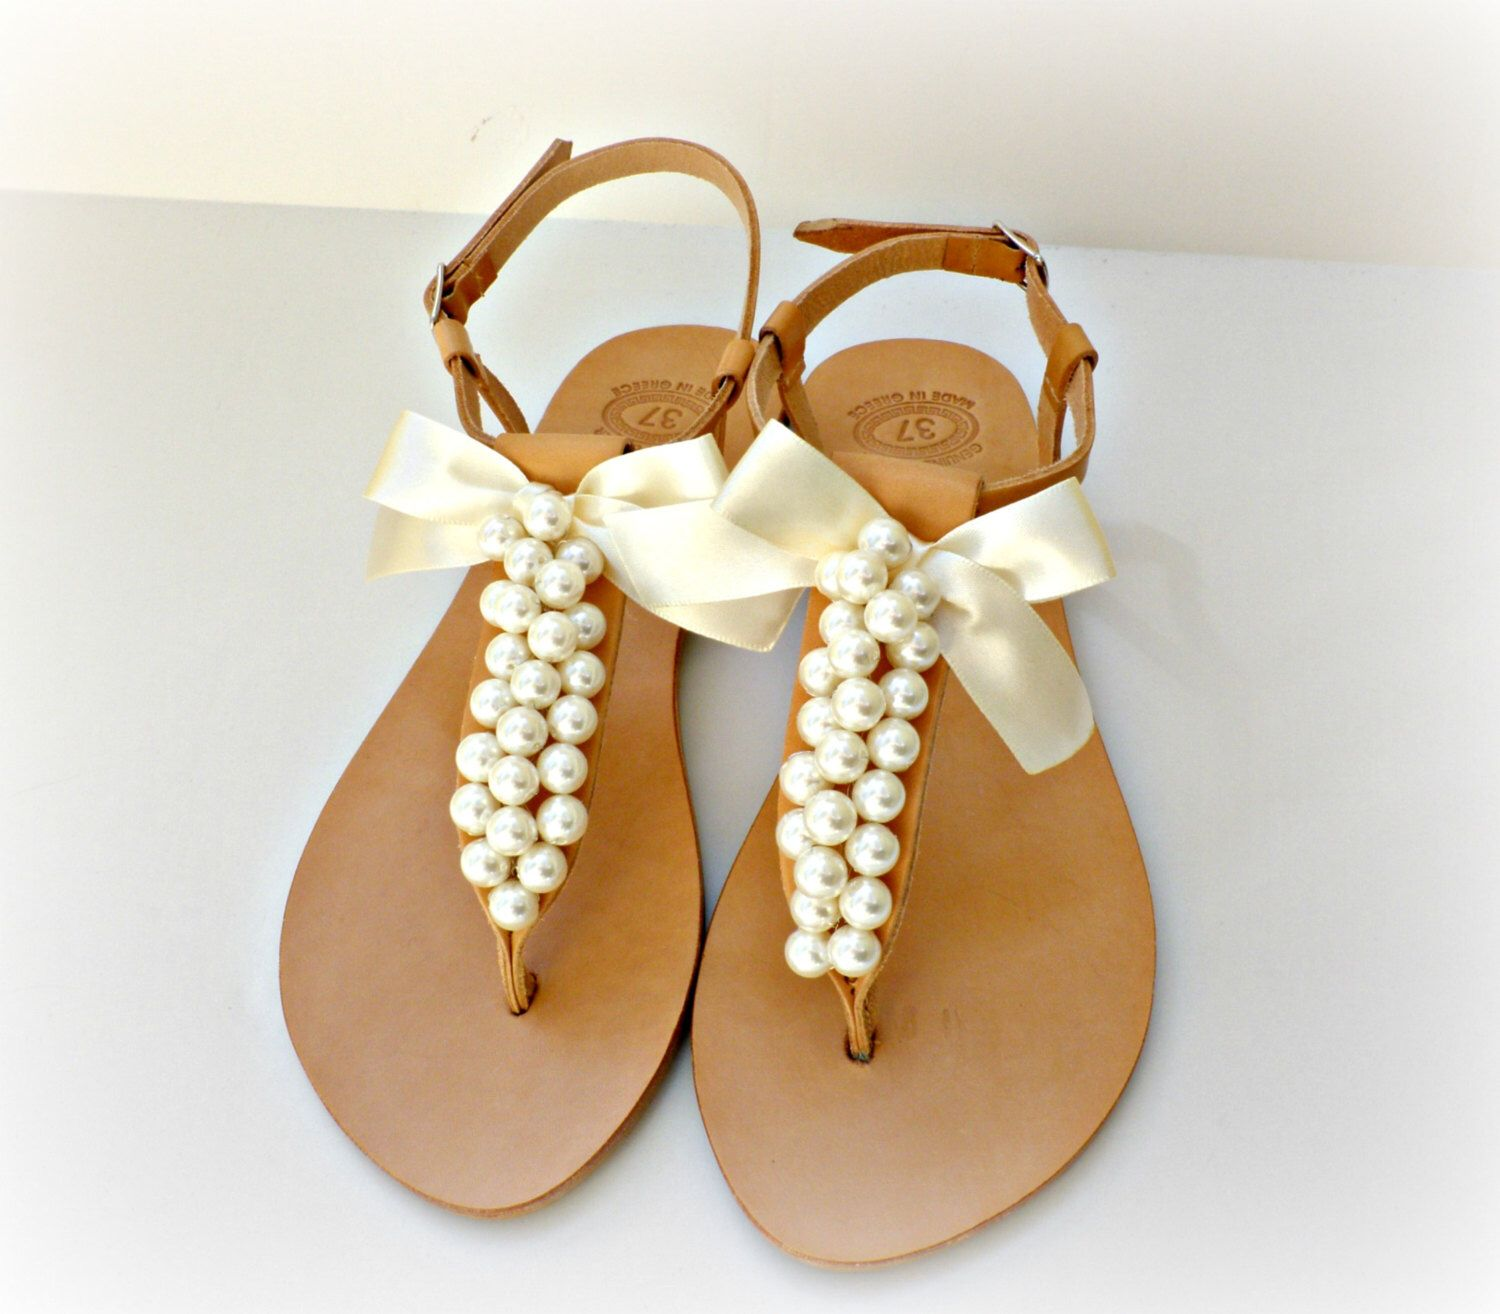 d88191836e0e34 Wedding sandals- Greek leather sandals decorated with white pearls and satin  bow -Bridal party